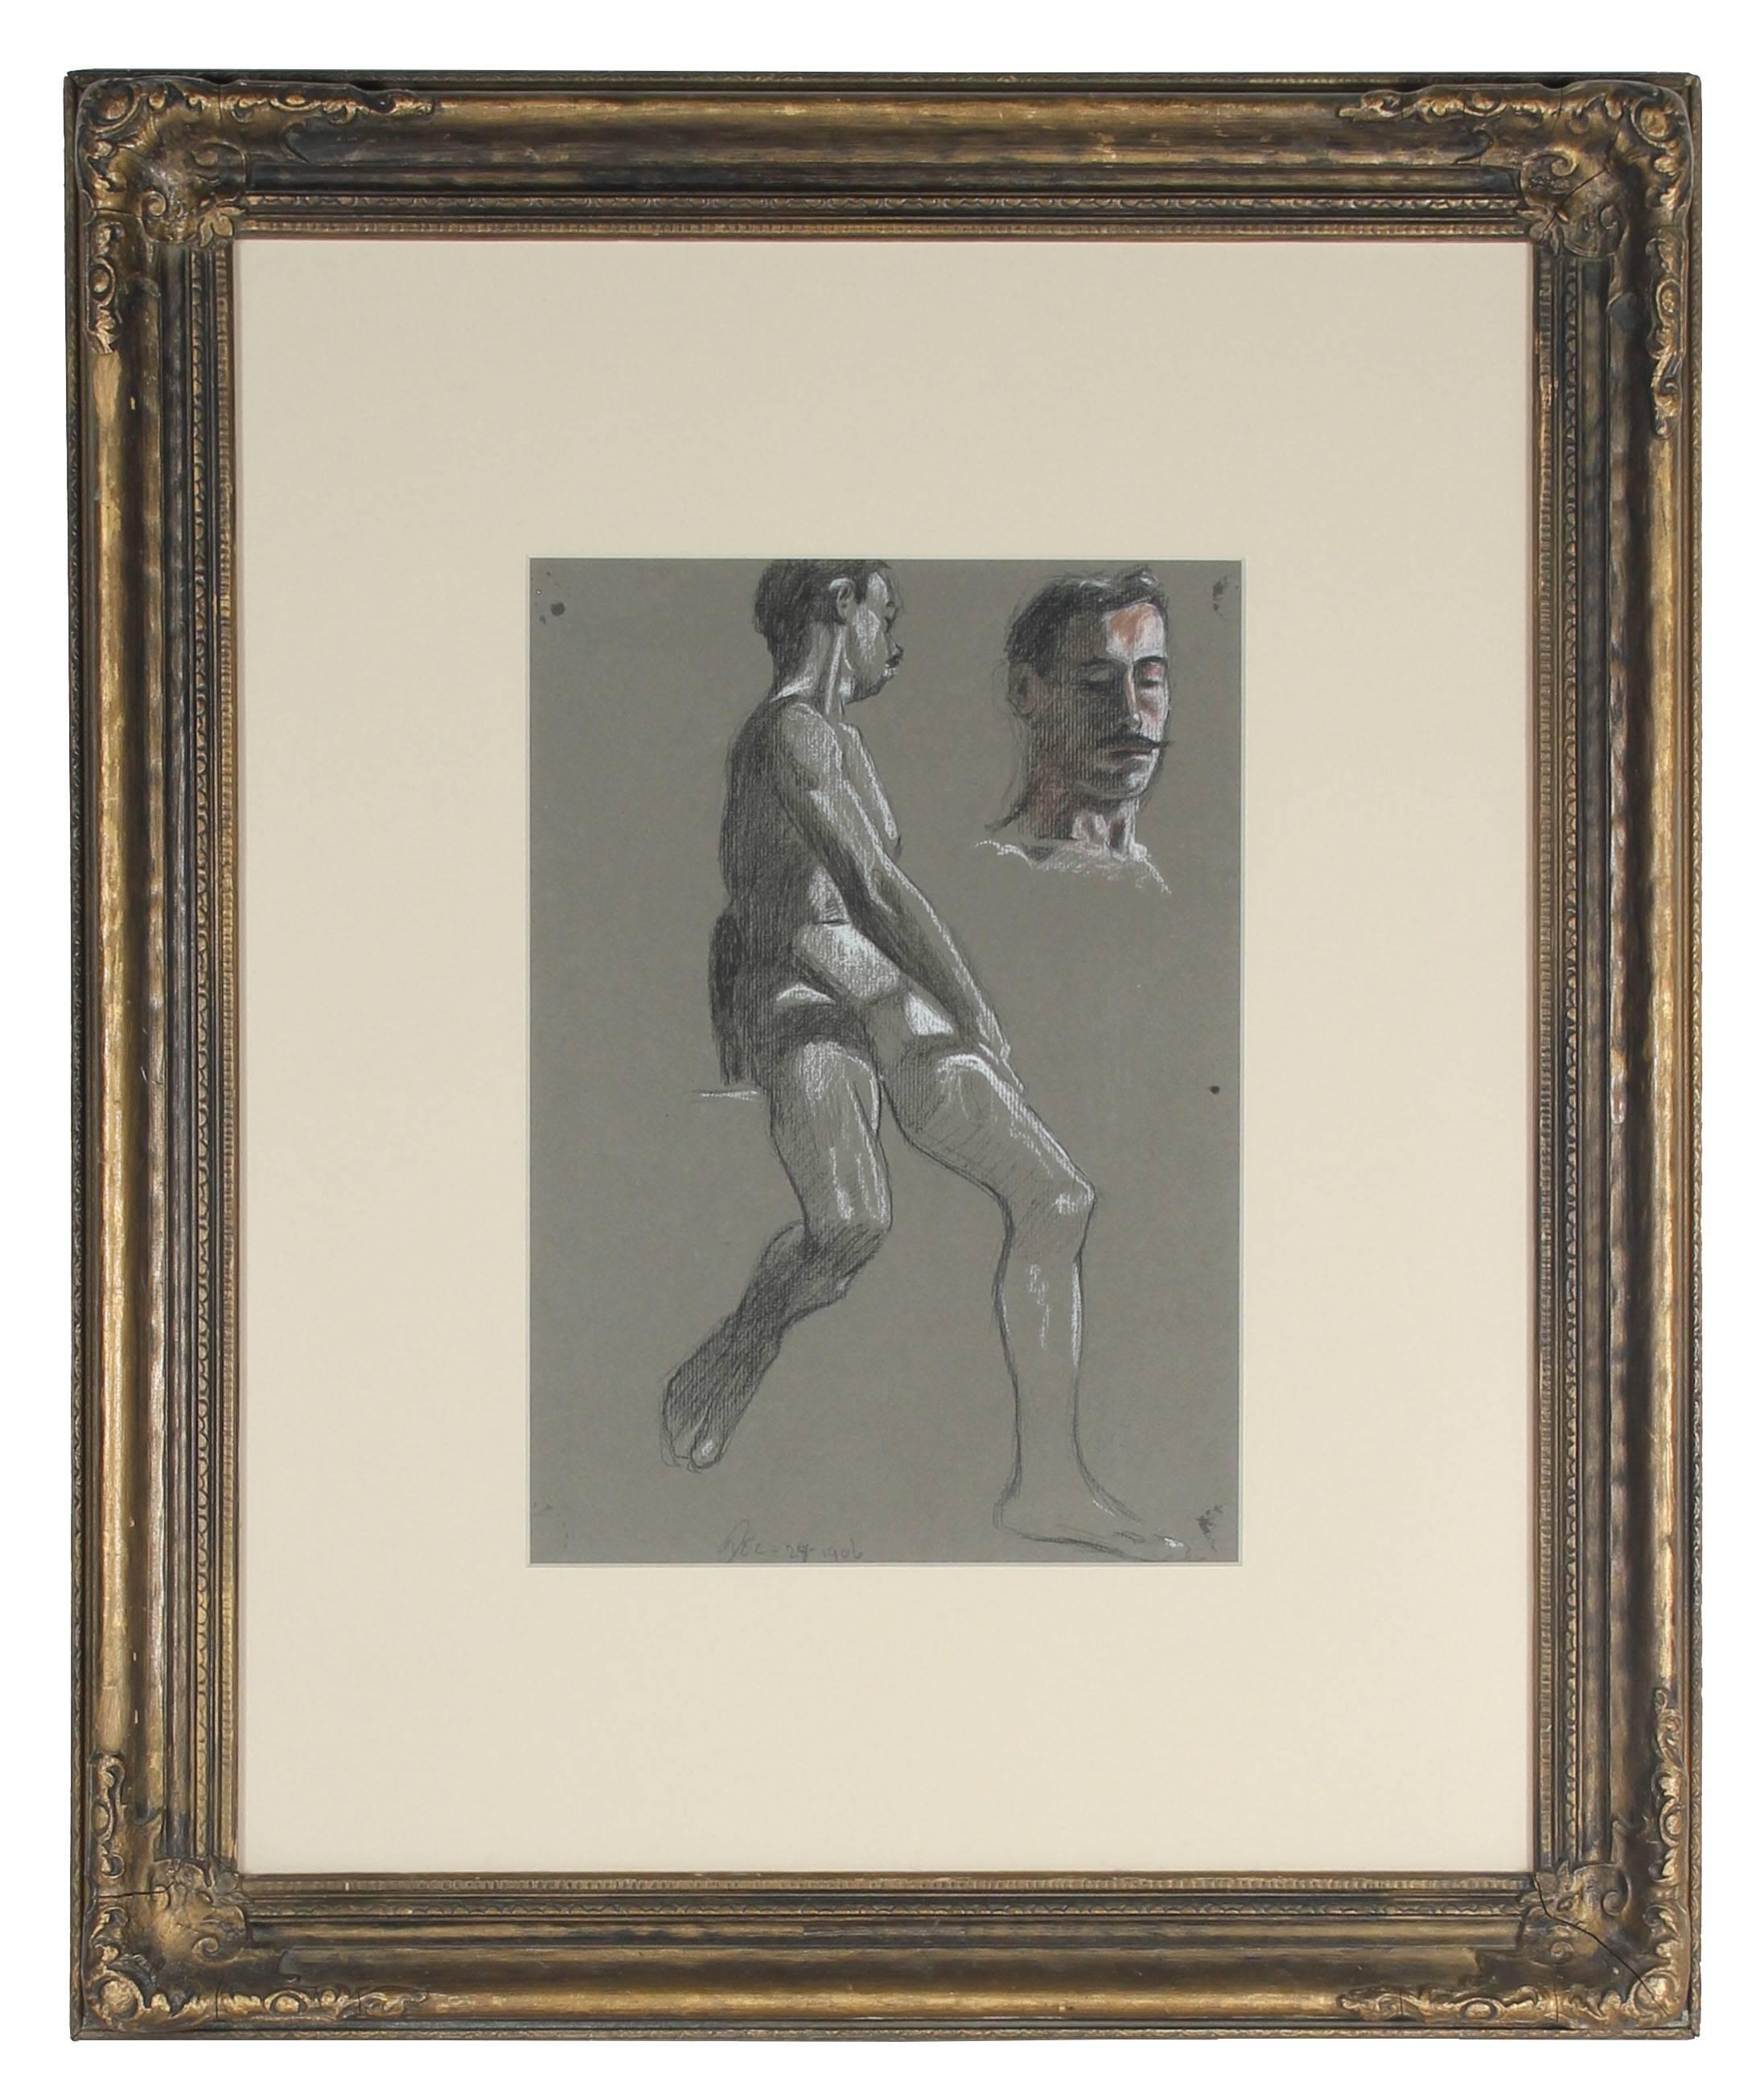 Parisian Male Figure Study in Charcoal and Pastel, 1906